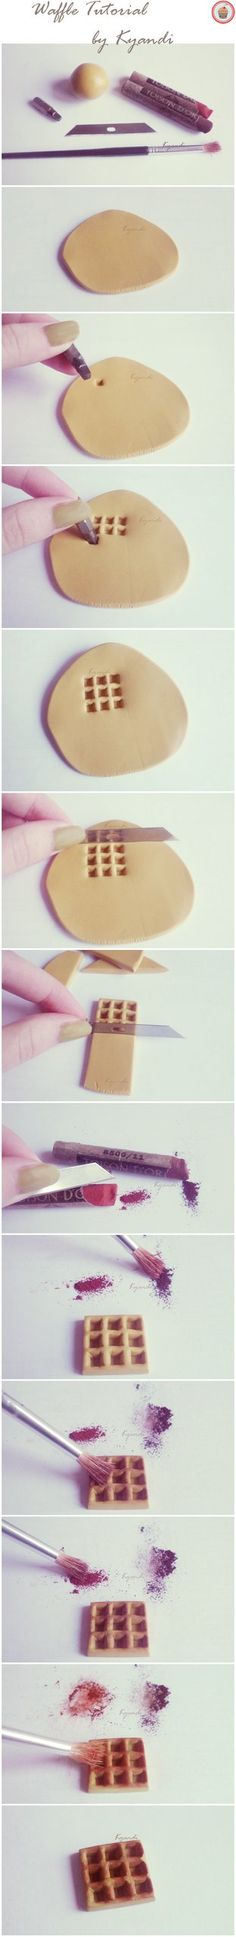 Polymer clay waffle tutorial by ~Kyandi-charms on deviantART